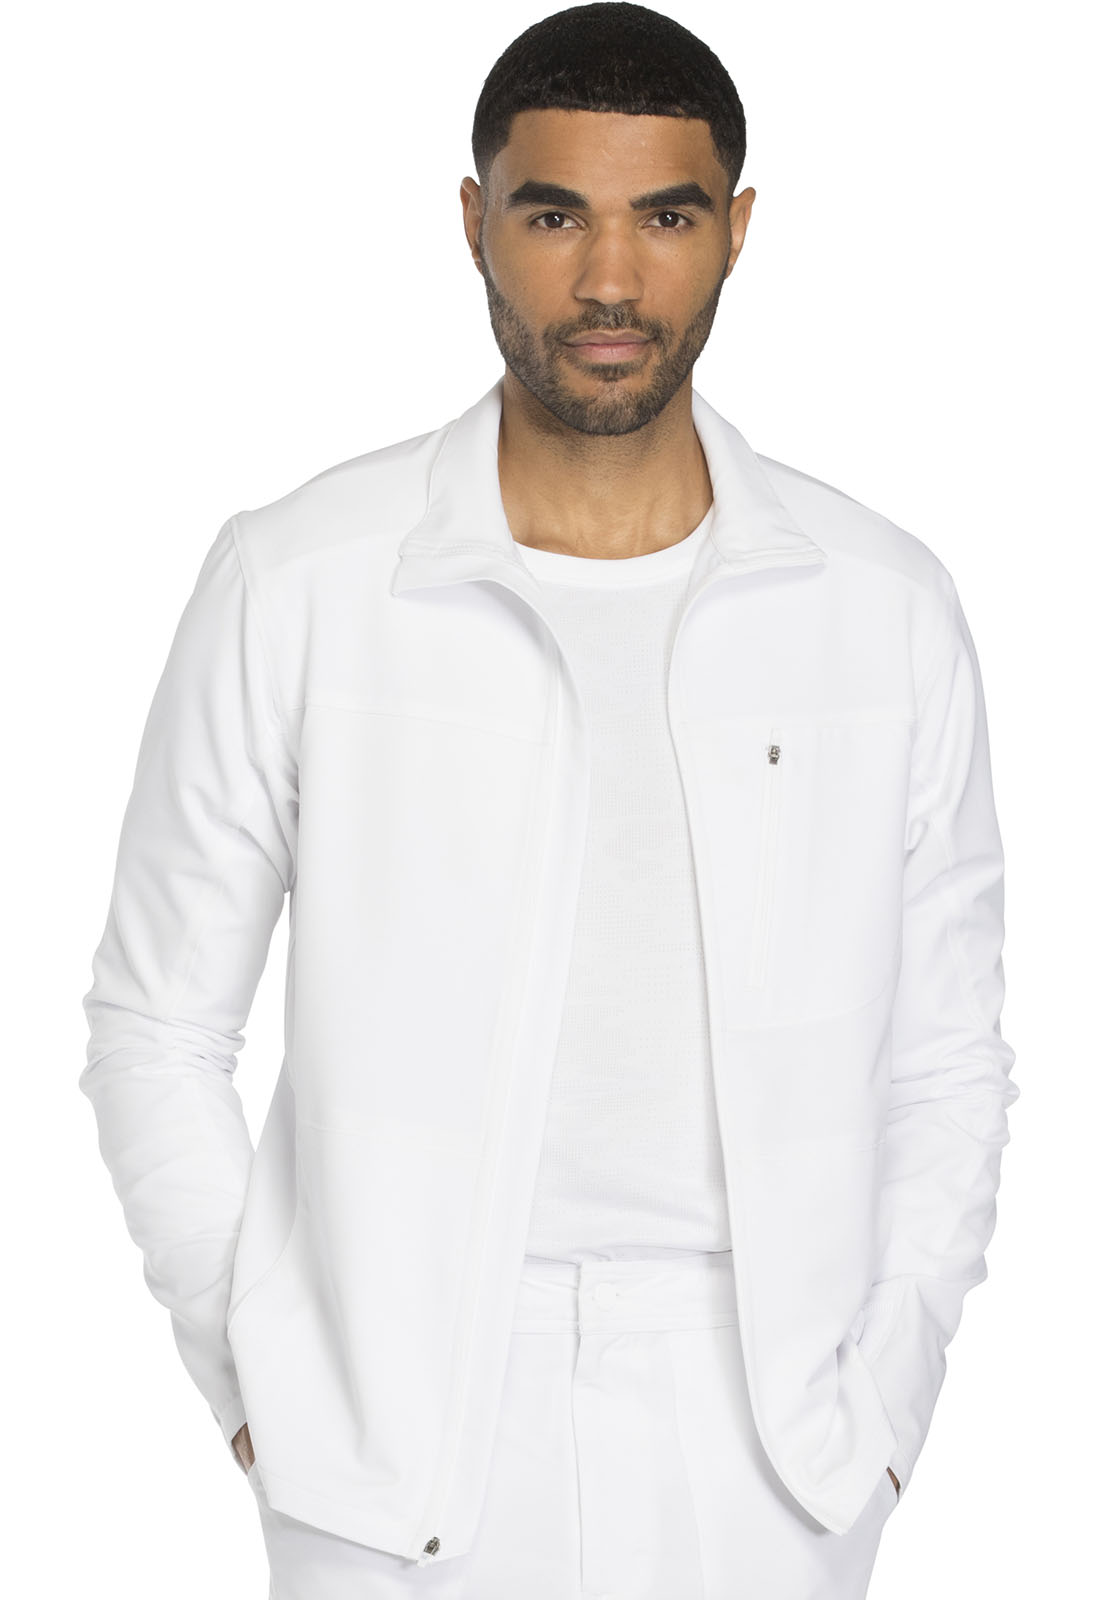 819a2ce64b0 Dickies Dynamix Men's Zip Front Warm-up Jacket in White from Dickies ...